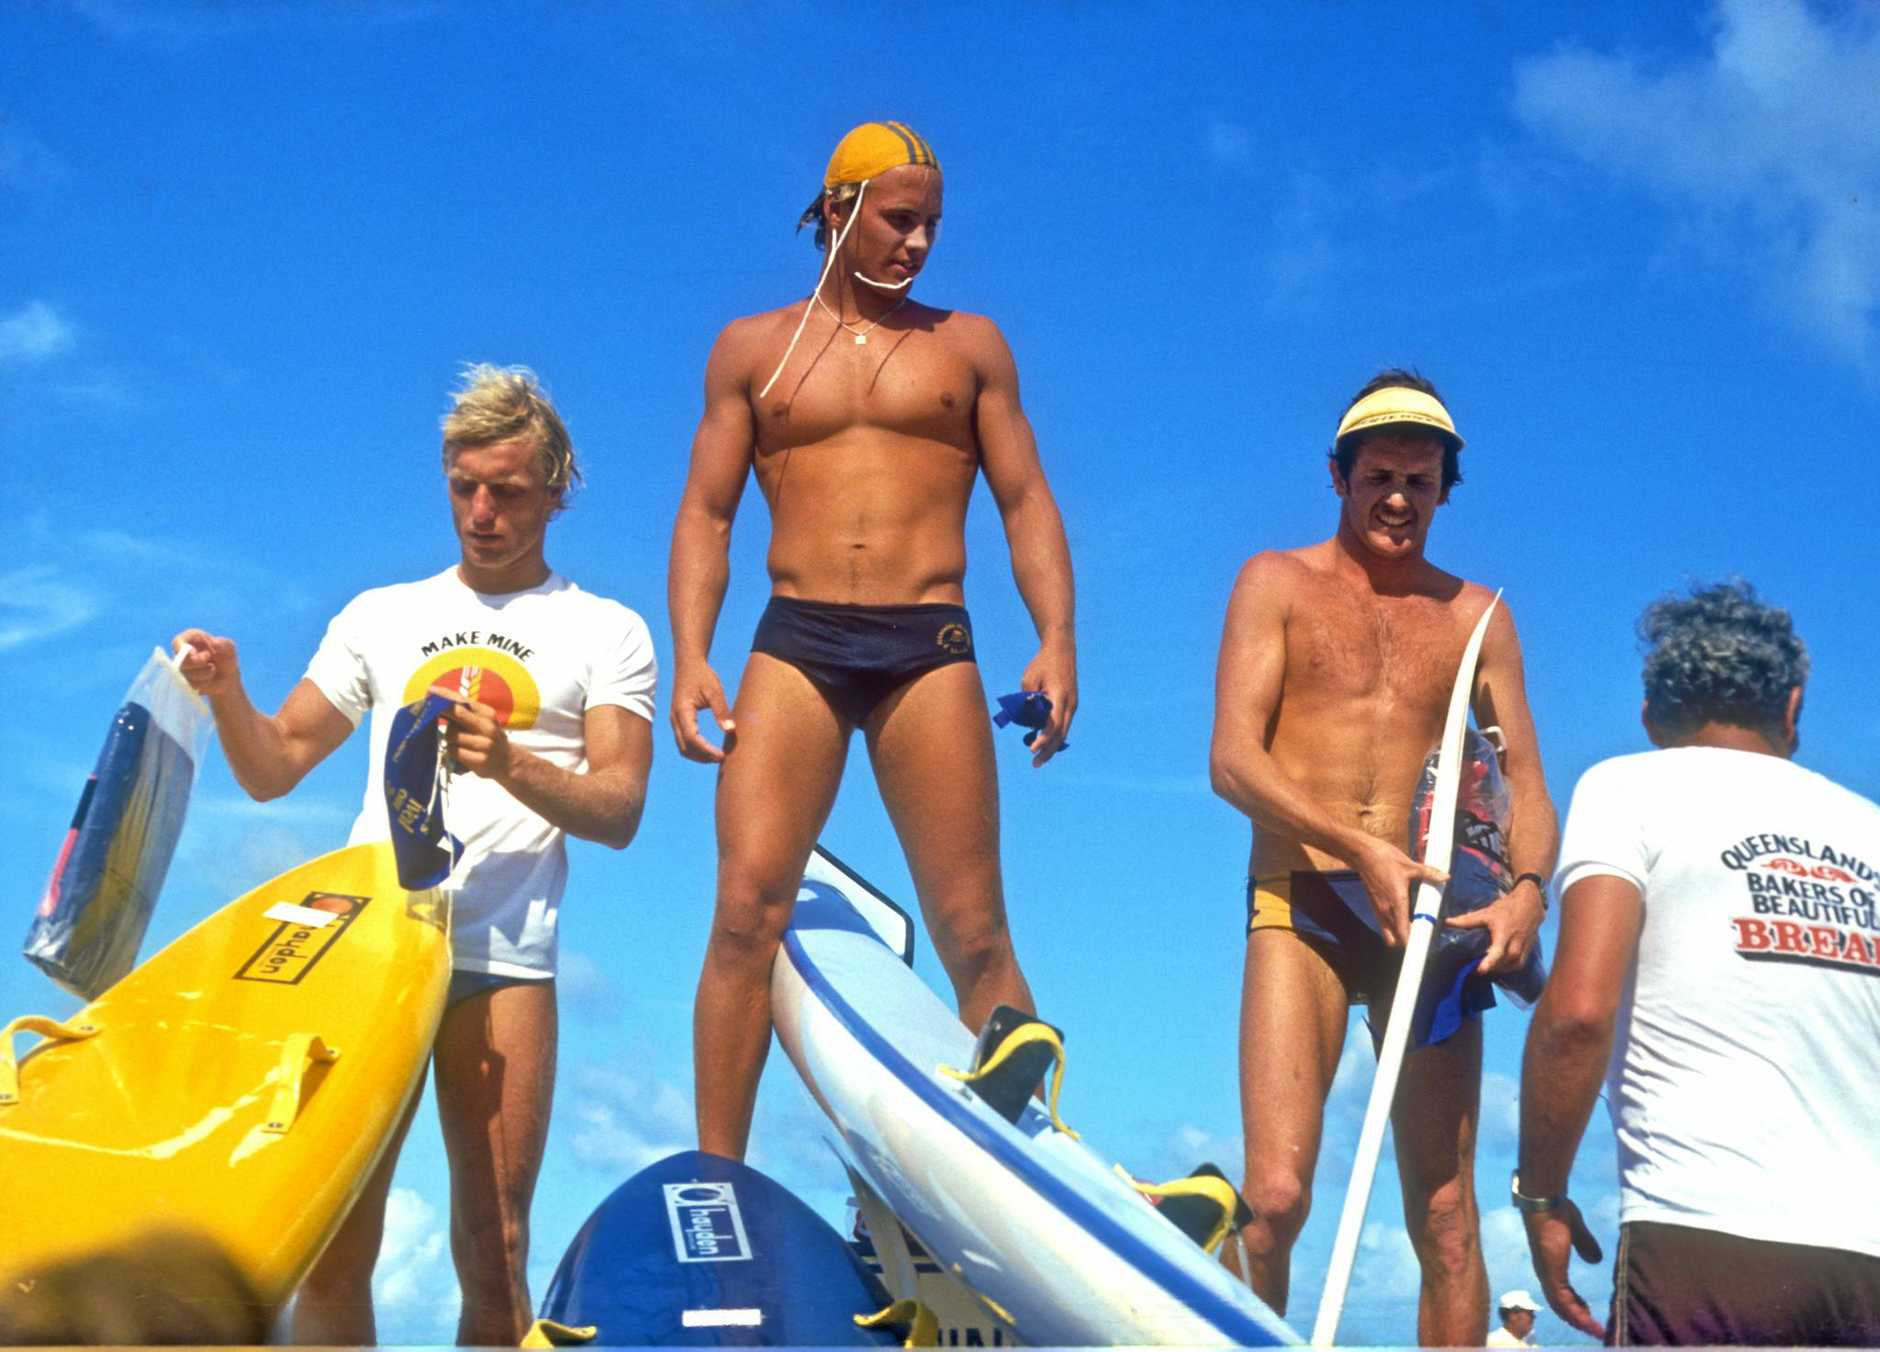 Grant Kenny wins the Ironman at the Surf Lifesaving Titles, 1980Photo Linday Hope